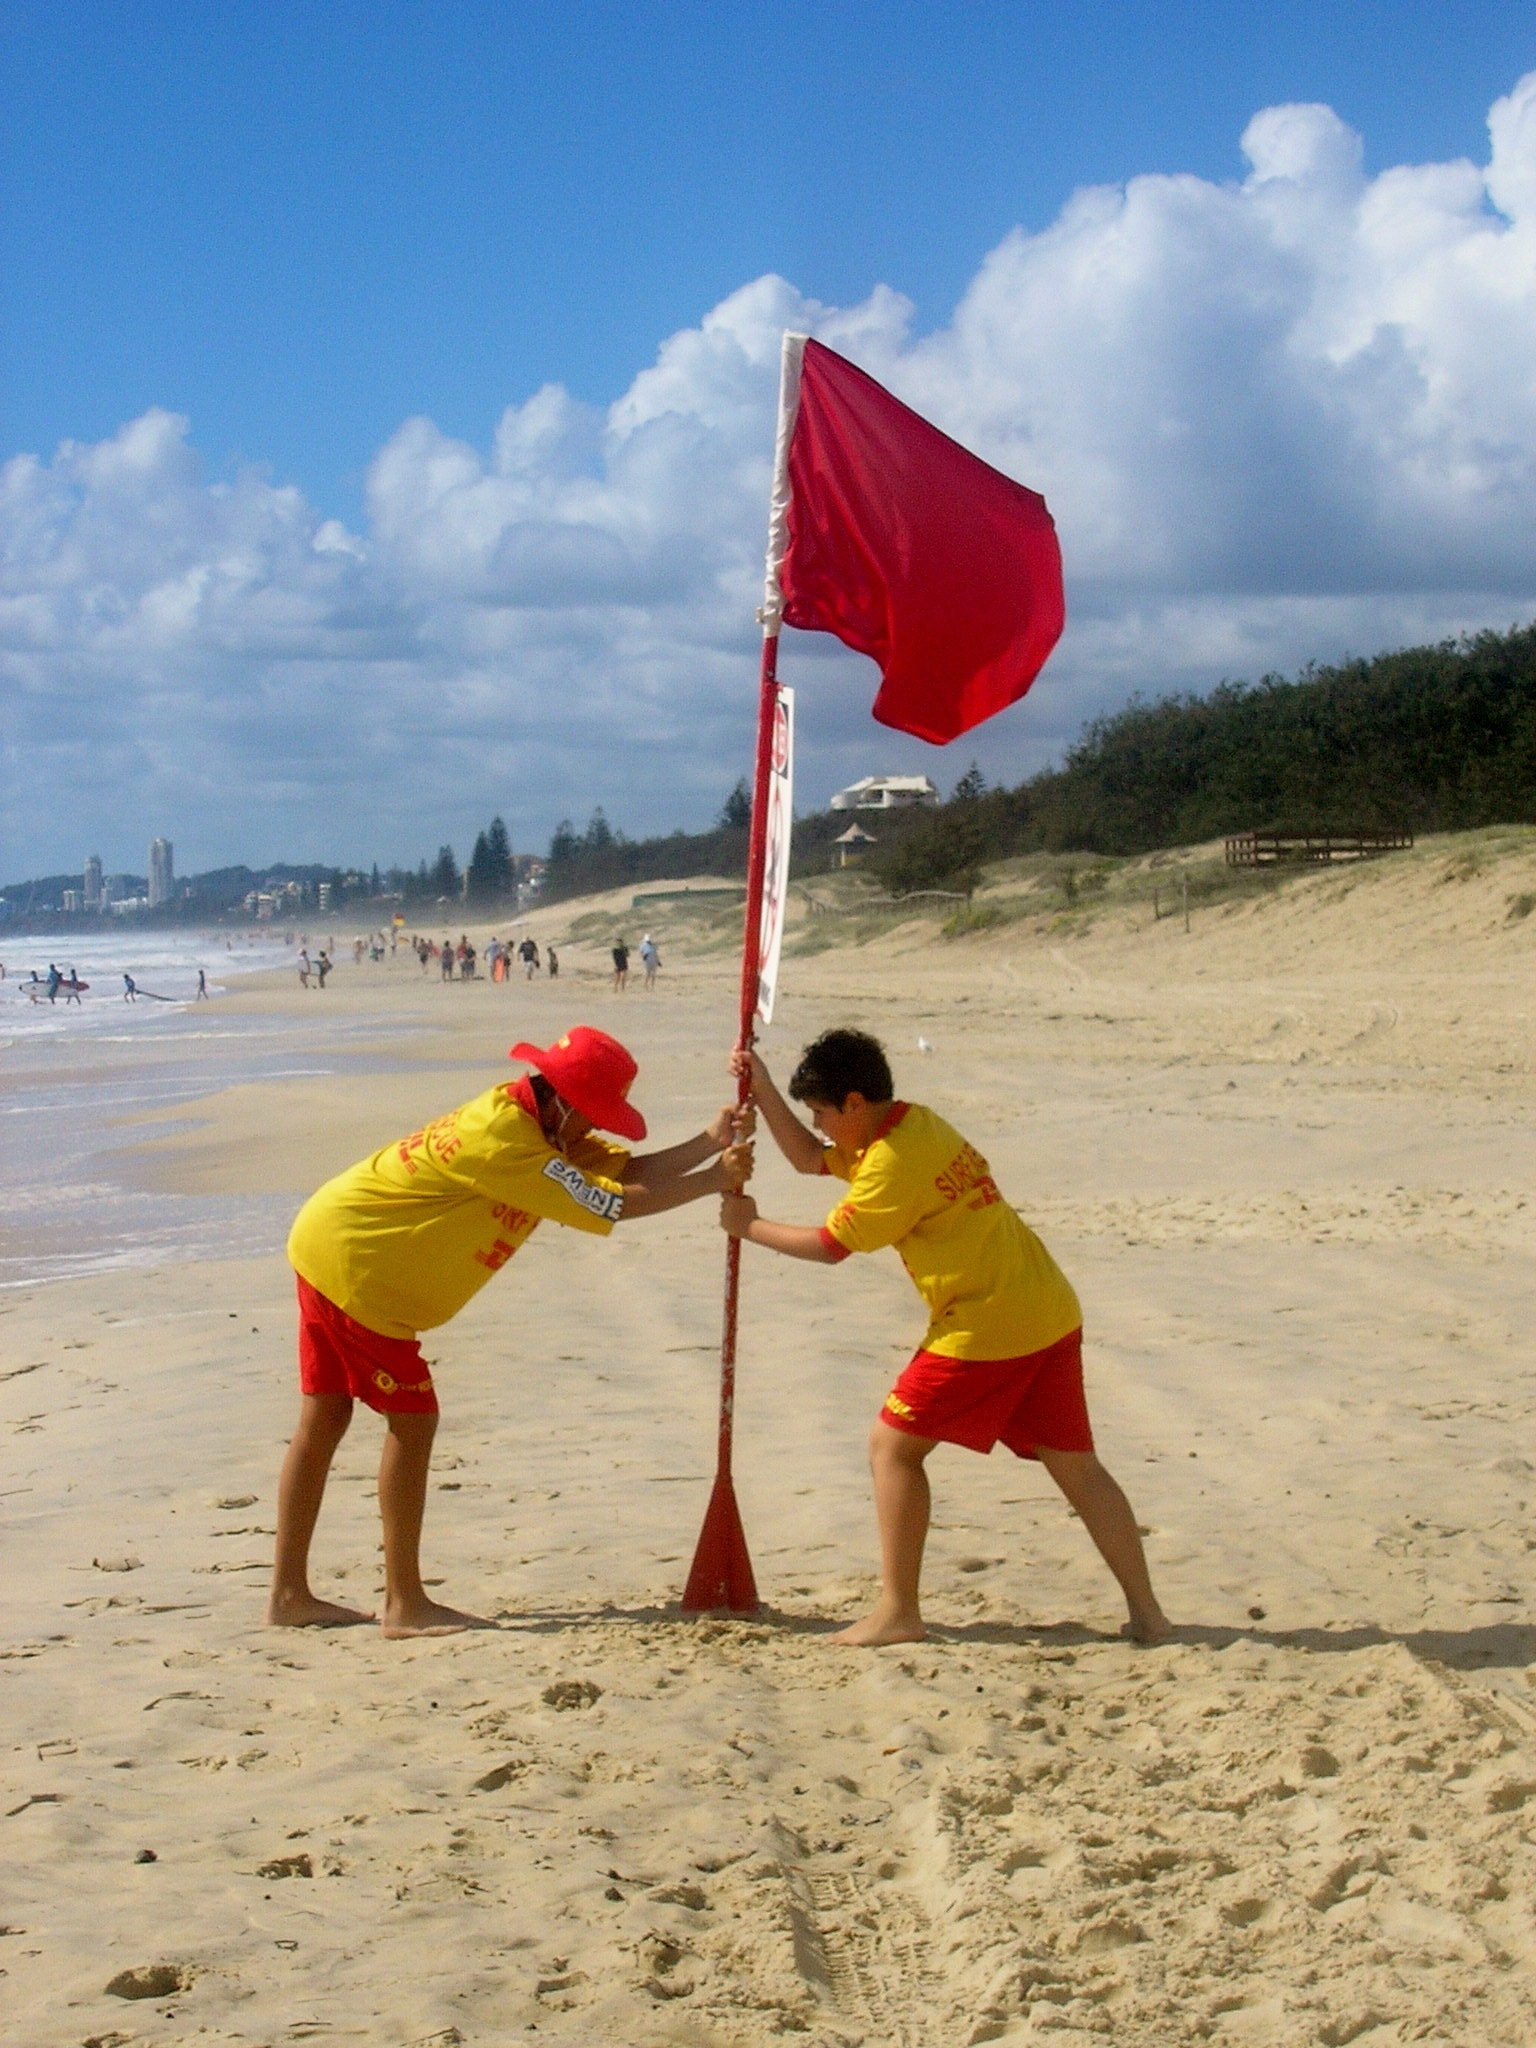 Life guards morning flag by Marlene McNally